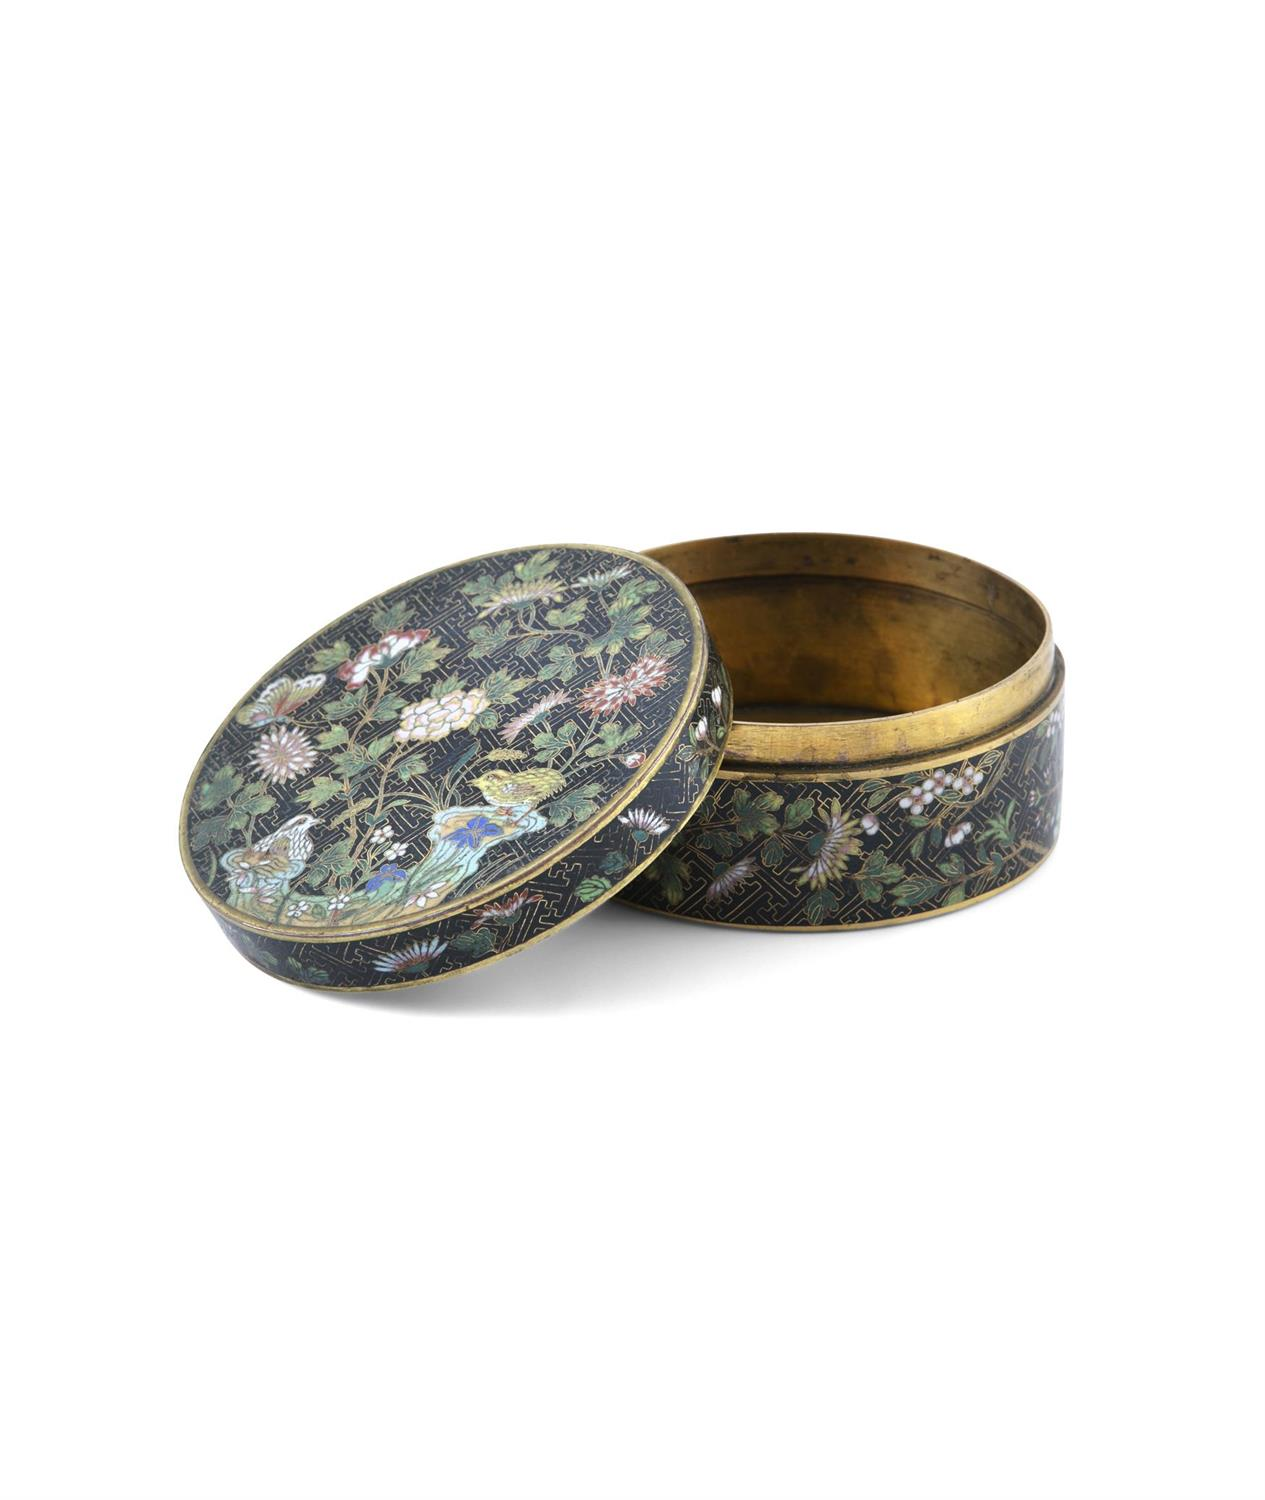 A 'FLOWER AND ROCKS' ROUND CLOISONNE BOX AND COVER China, Late Qing to Republican / Minguo period - Image 13 of 36